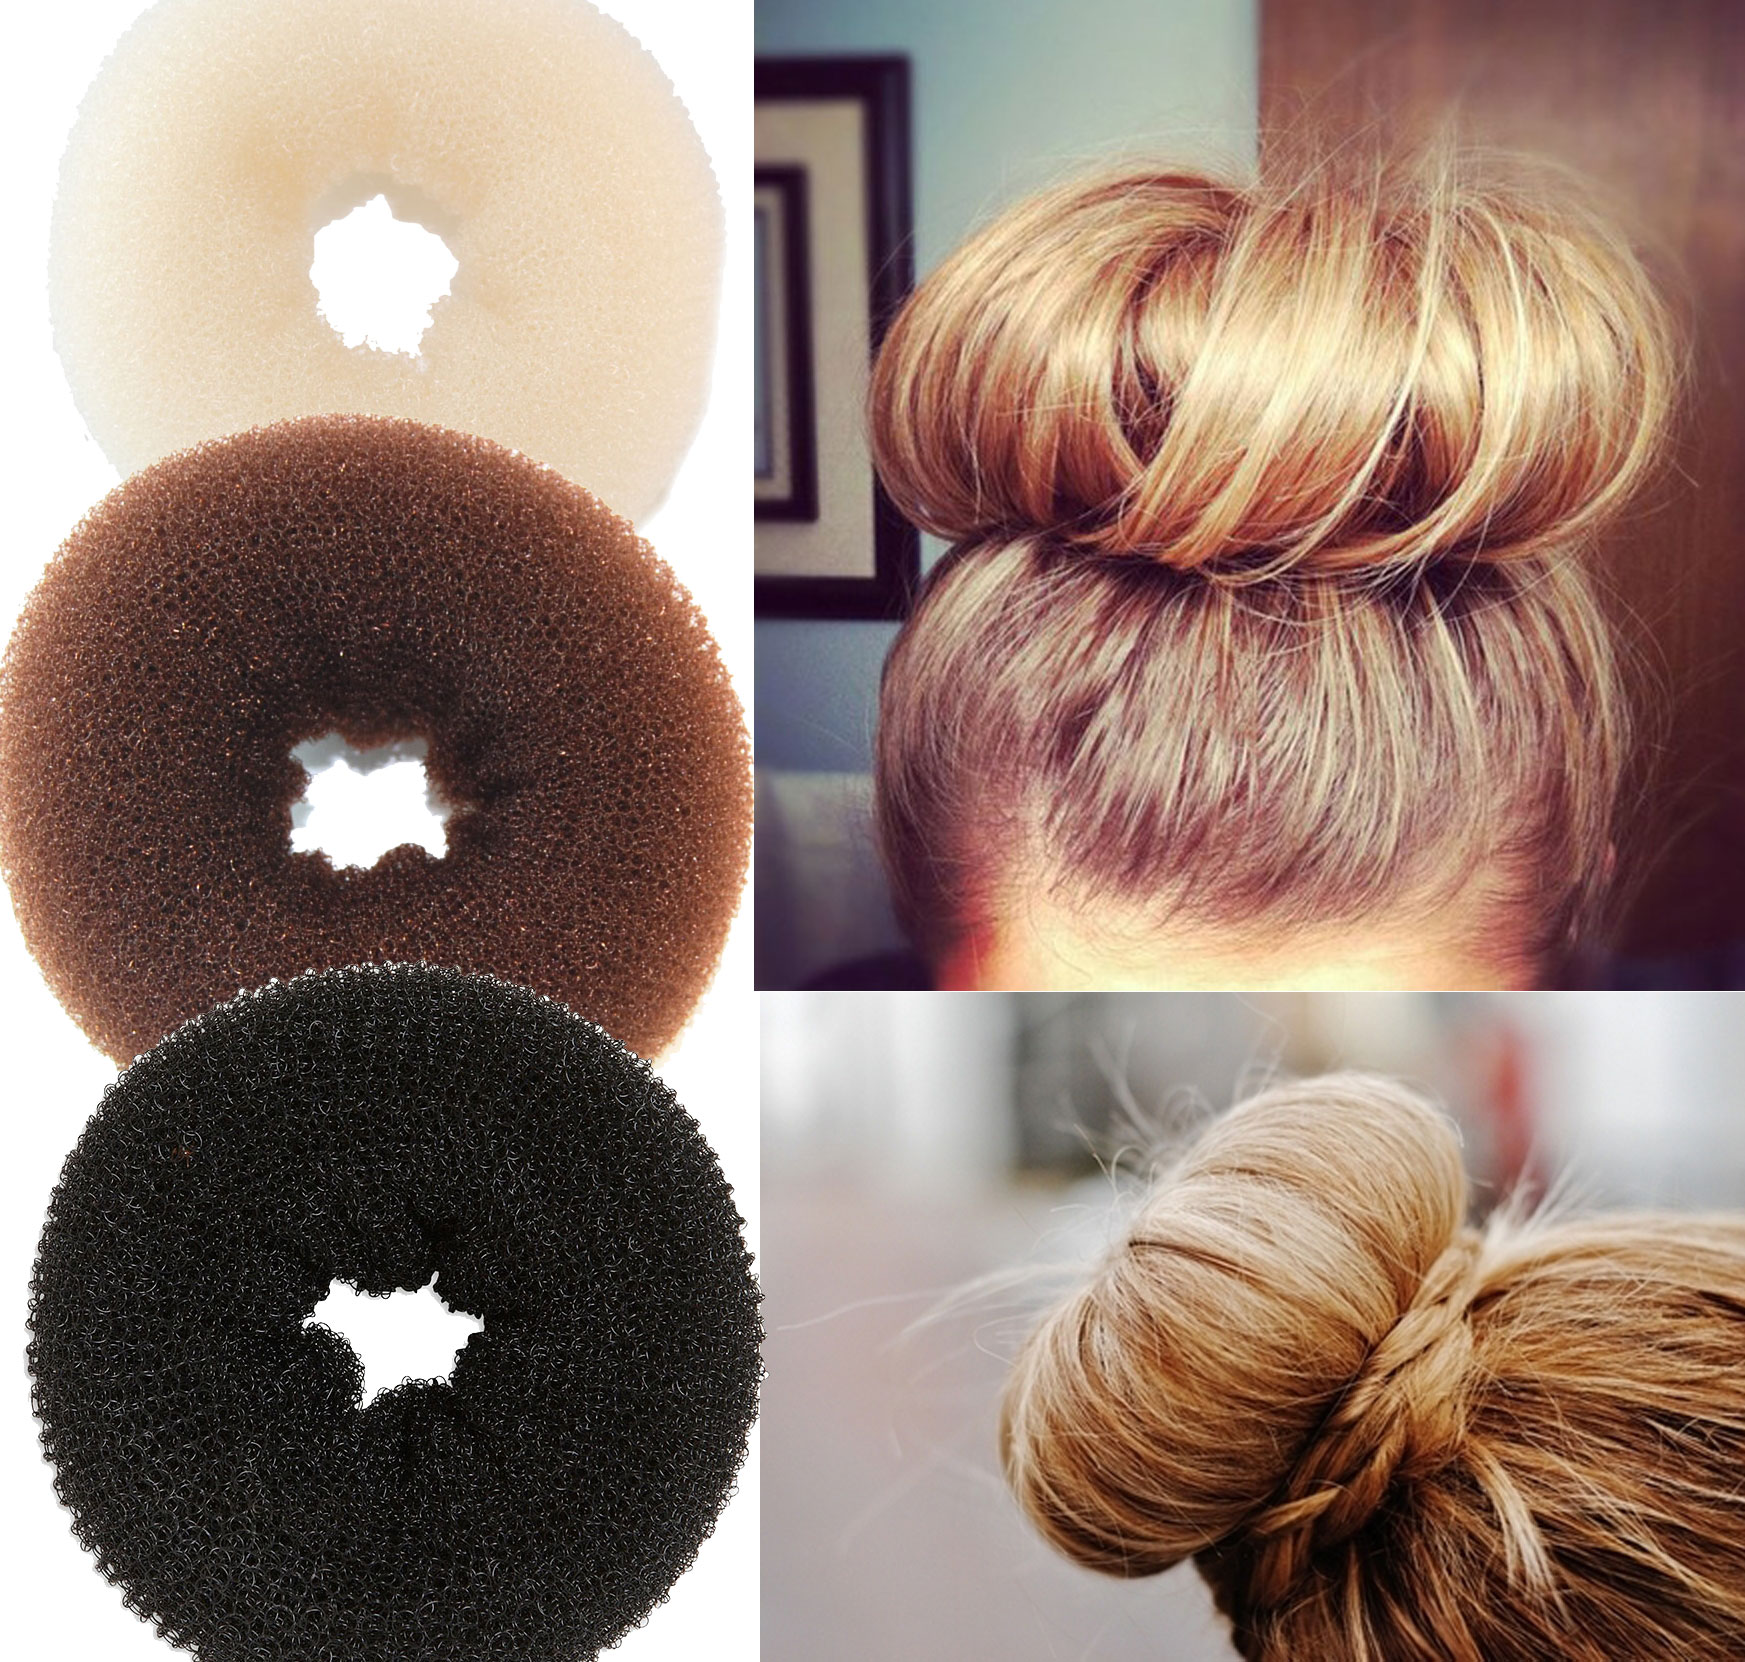 Shop for hair bun sponges online at Target. Free shipping on purchases over $35 and save 5% every day with your Target REDcard.